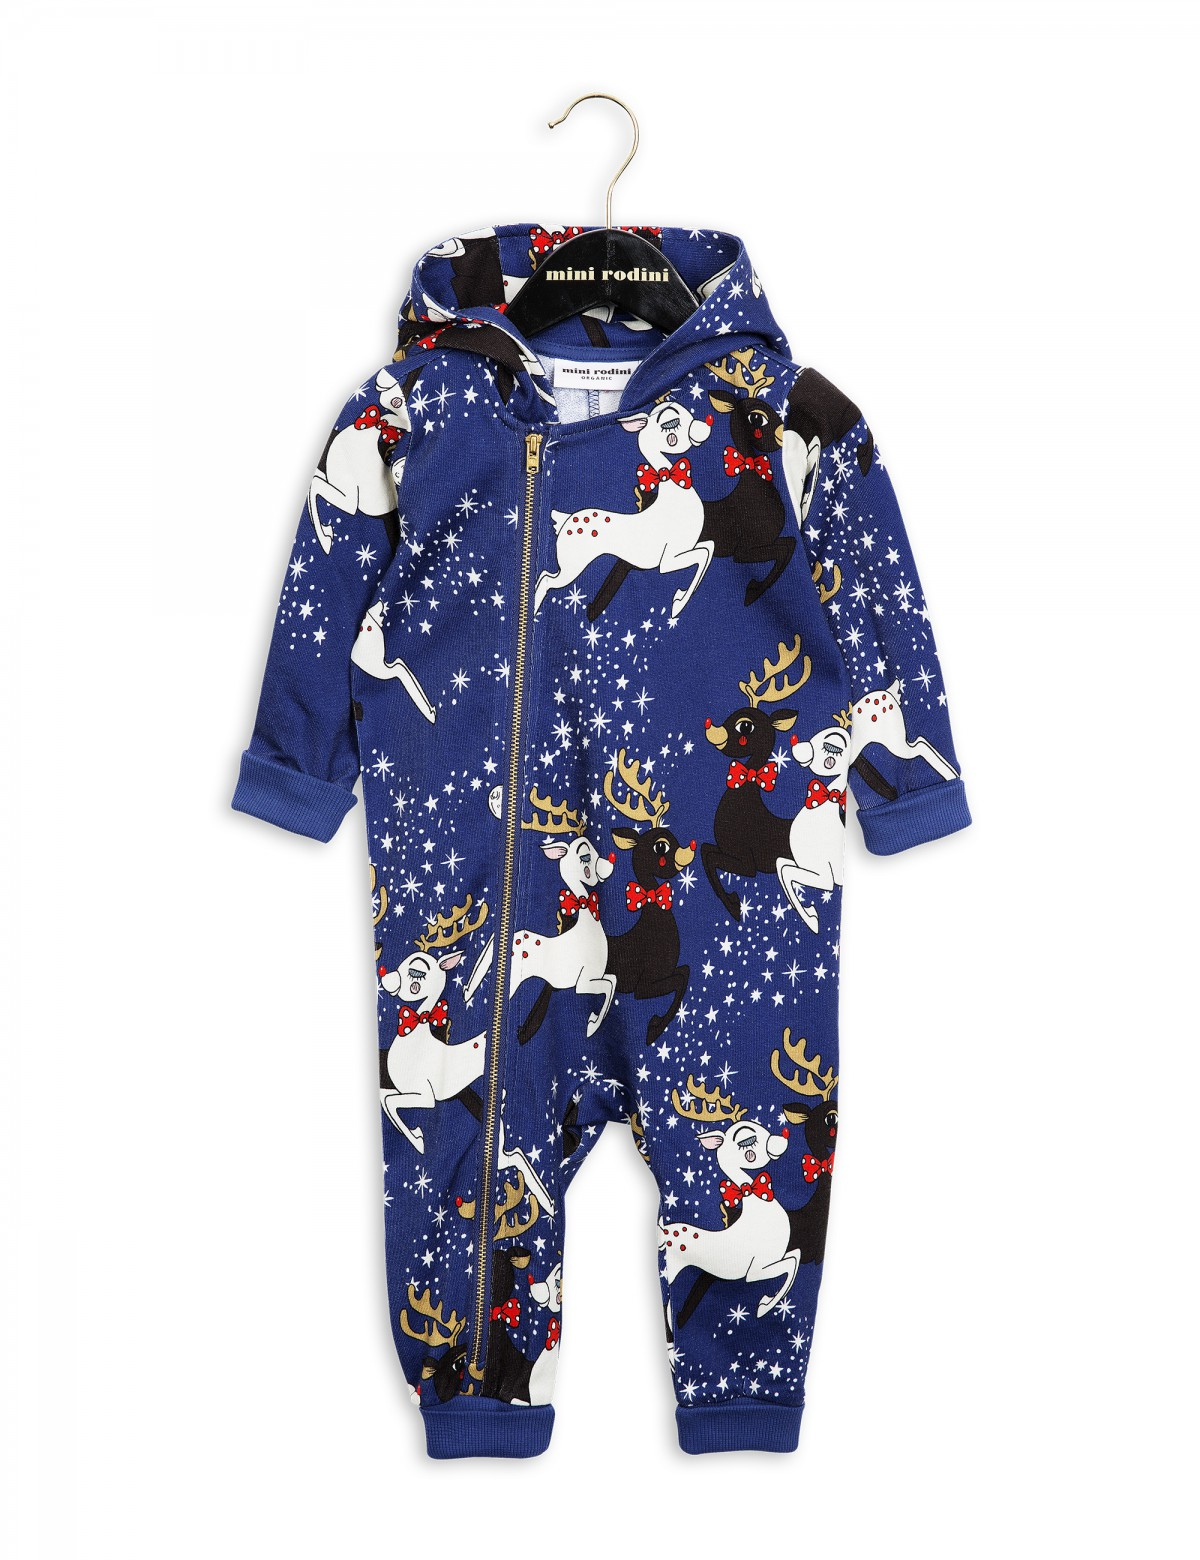 Mini Rodini launches Christmas collection